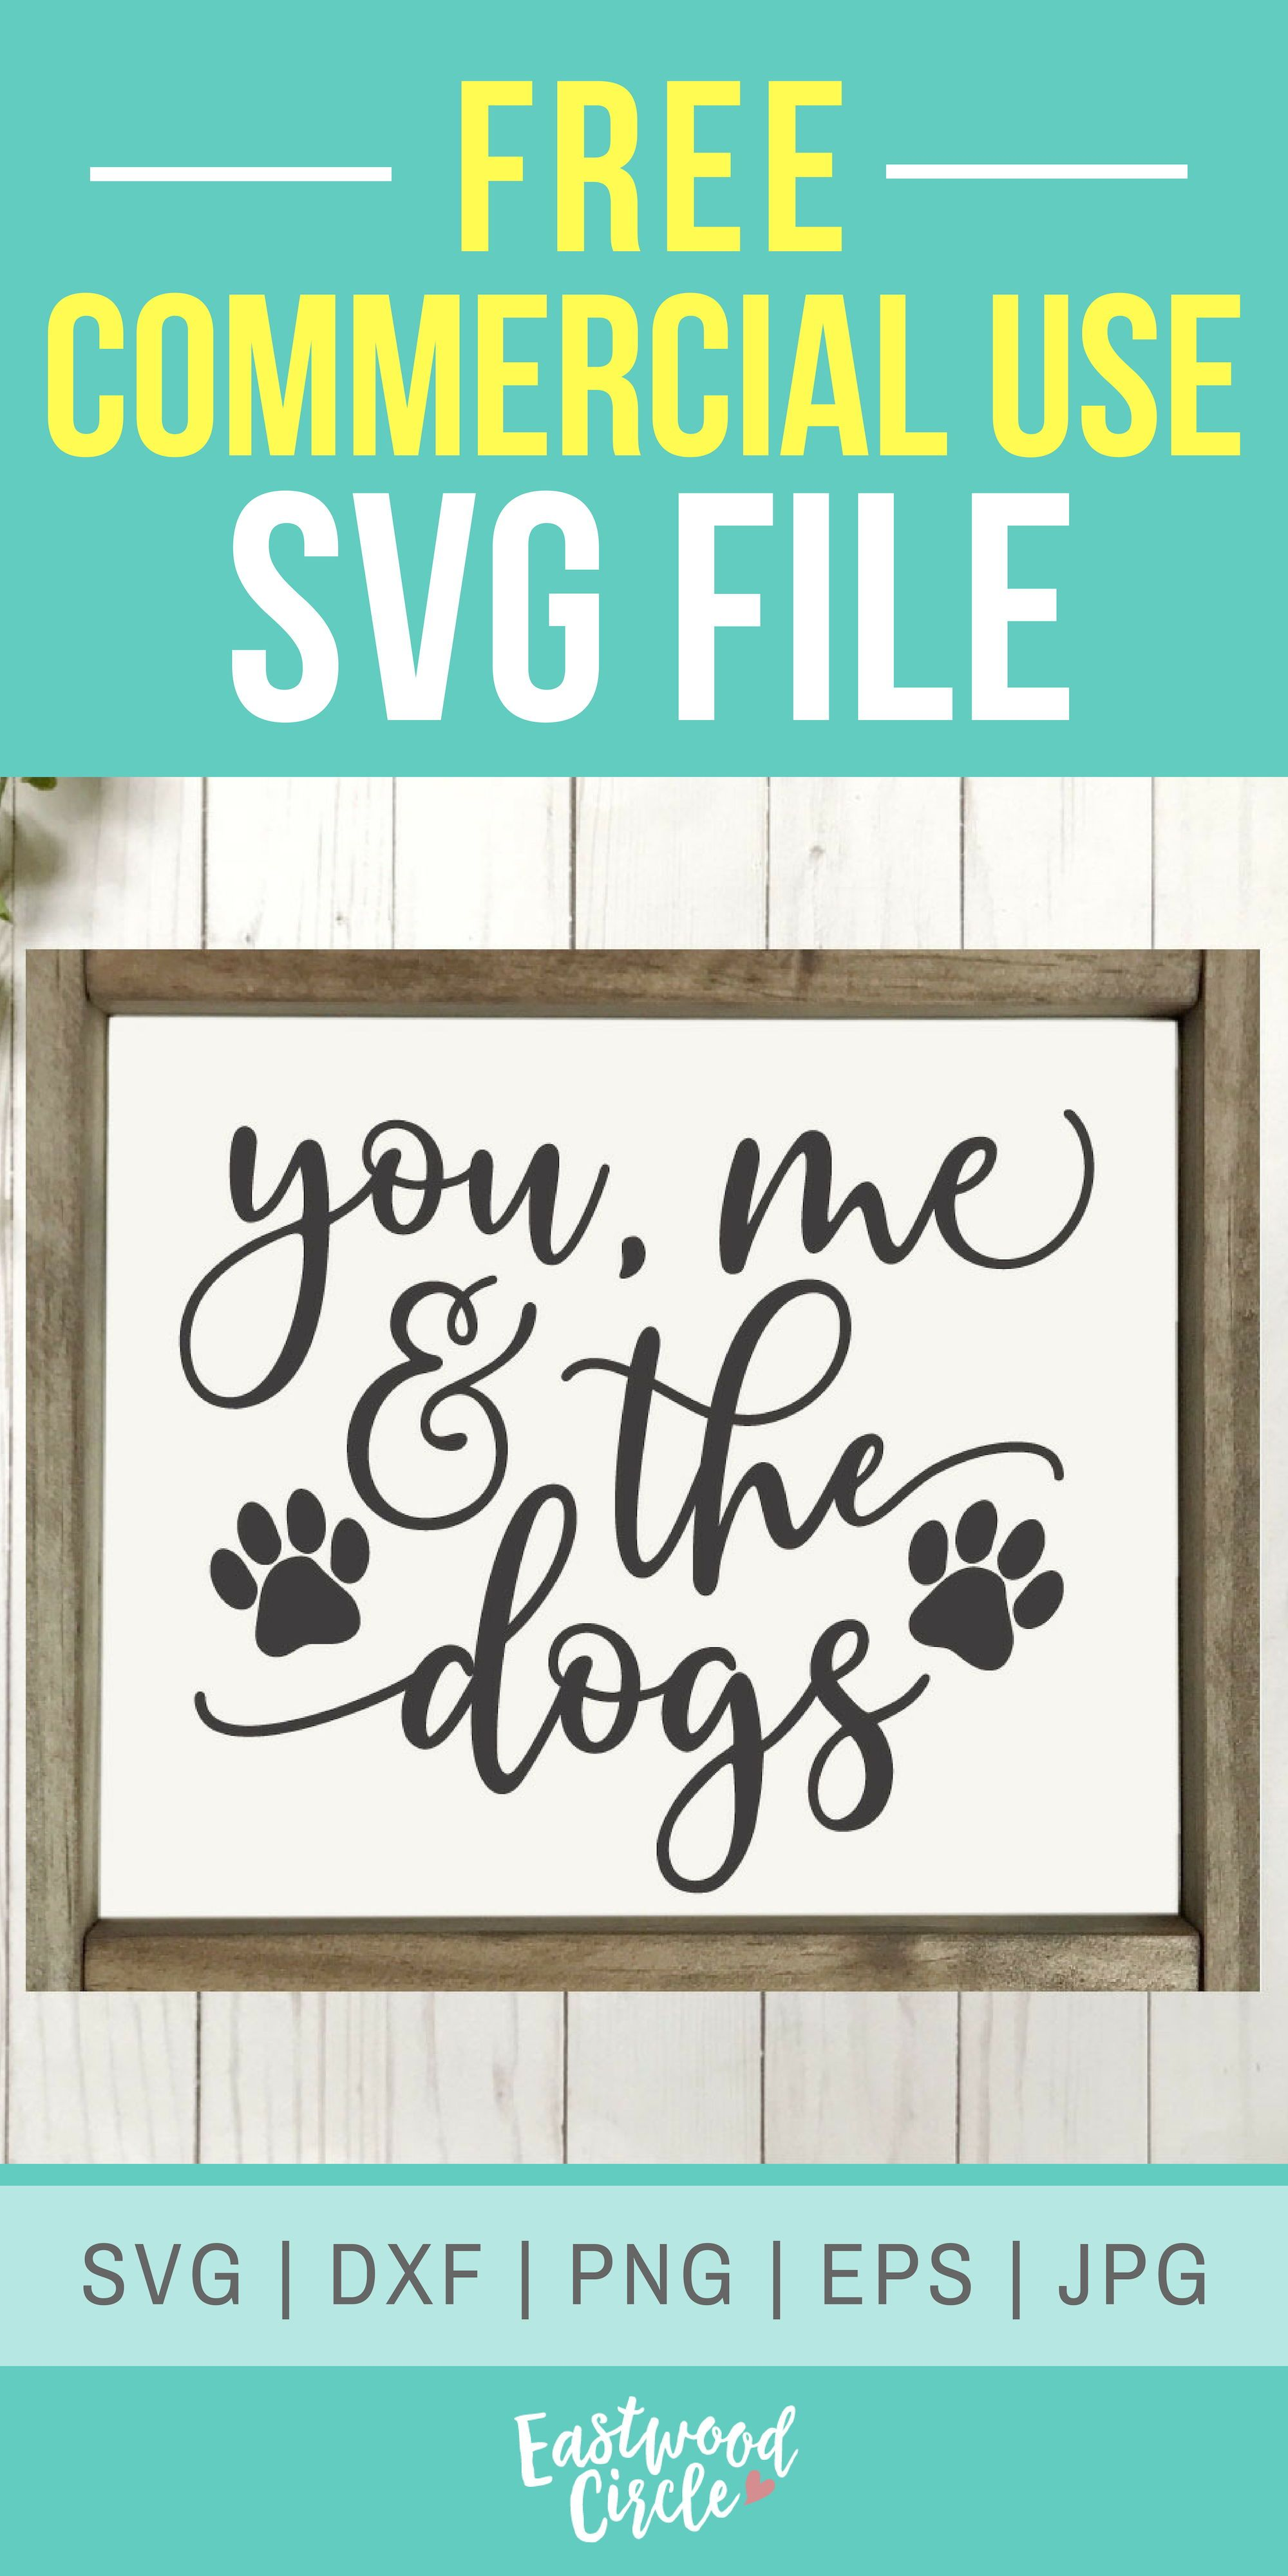 You Me and the Dogs svg, Dog svg, Dog Sign svg, Dog svg Files, Dog Lover svg, Dog svg Files for Cricut, dxf, png, Commercial Use, svg Files #cricutvinylprojects